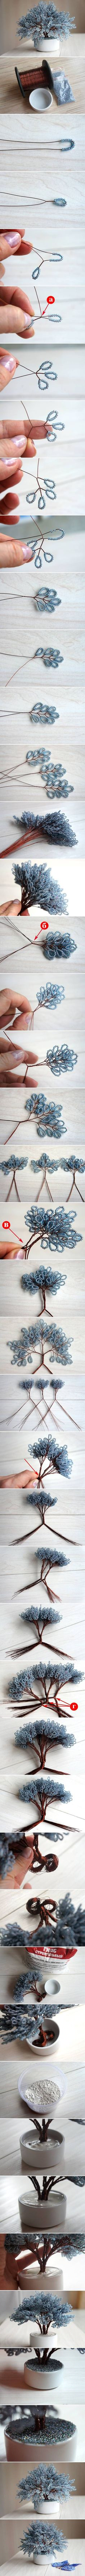 DIY Miniature Tree of Beads ... middle step would look great on a wall!